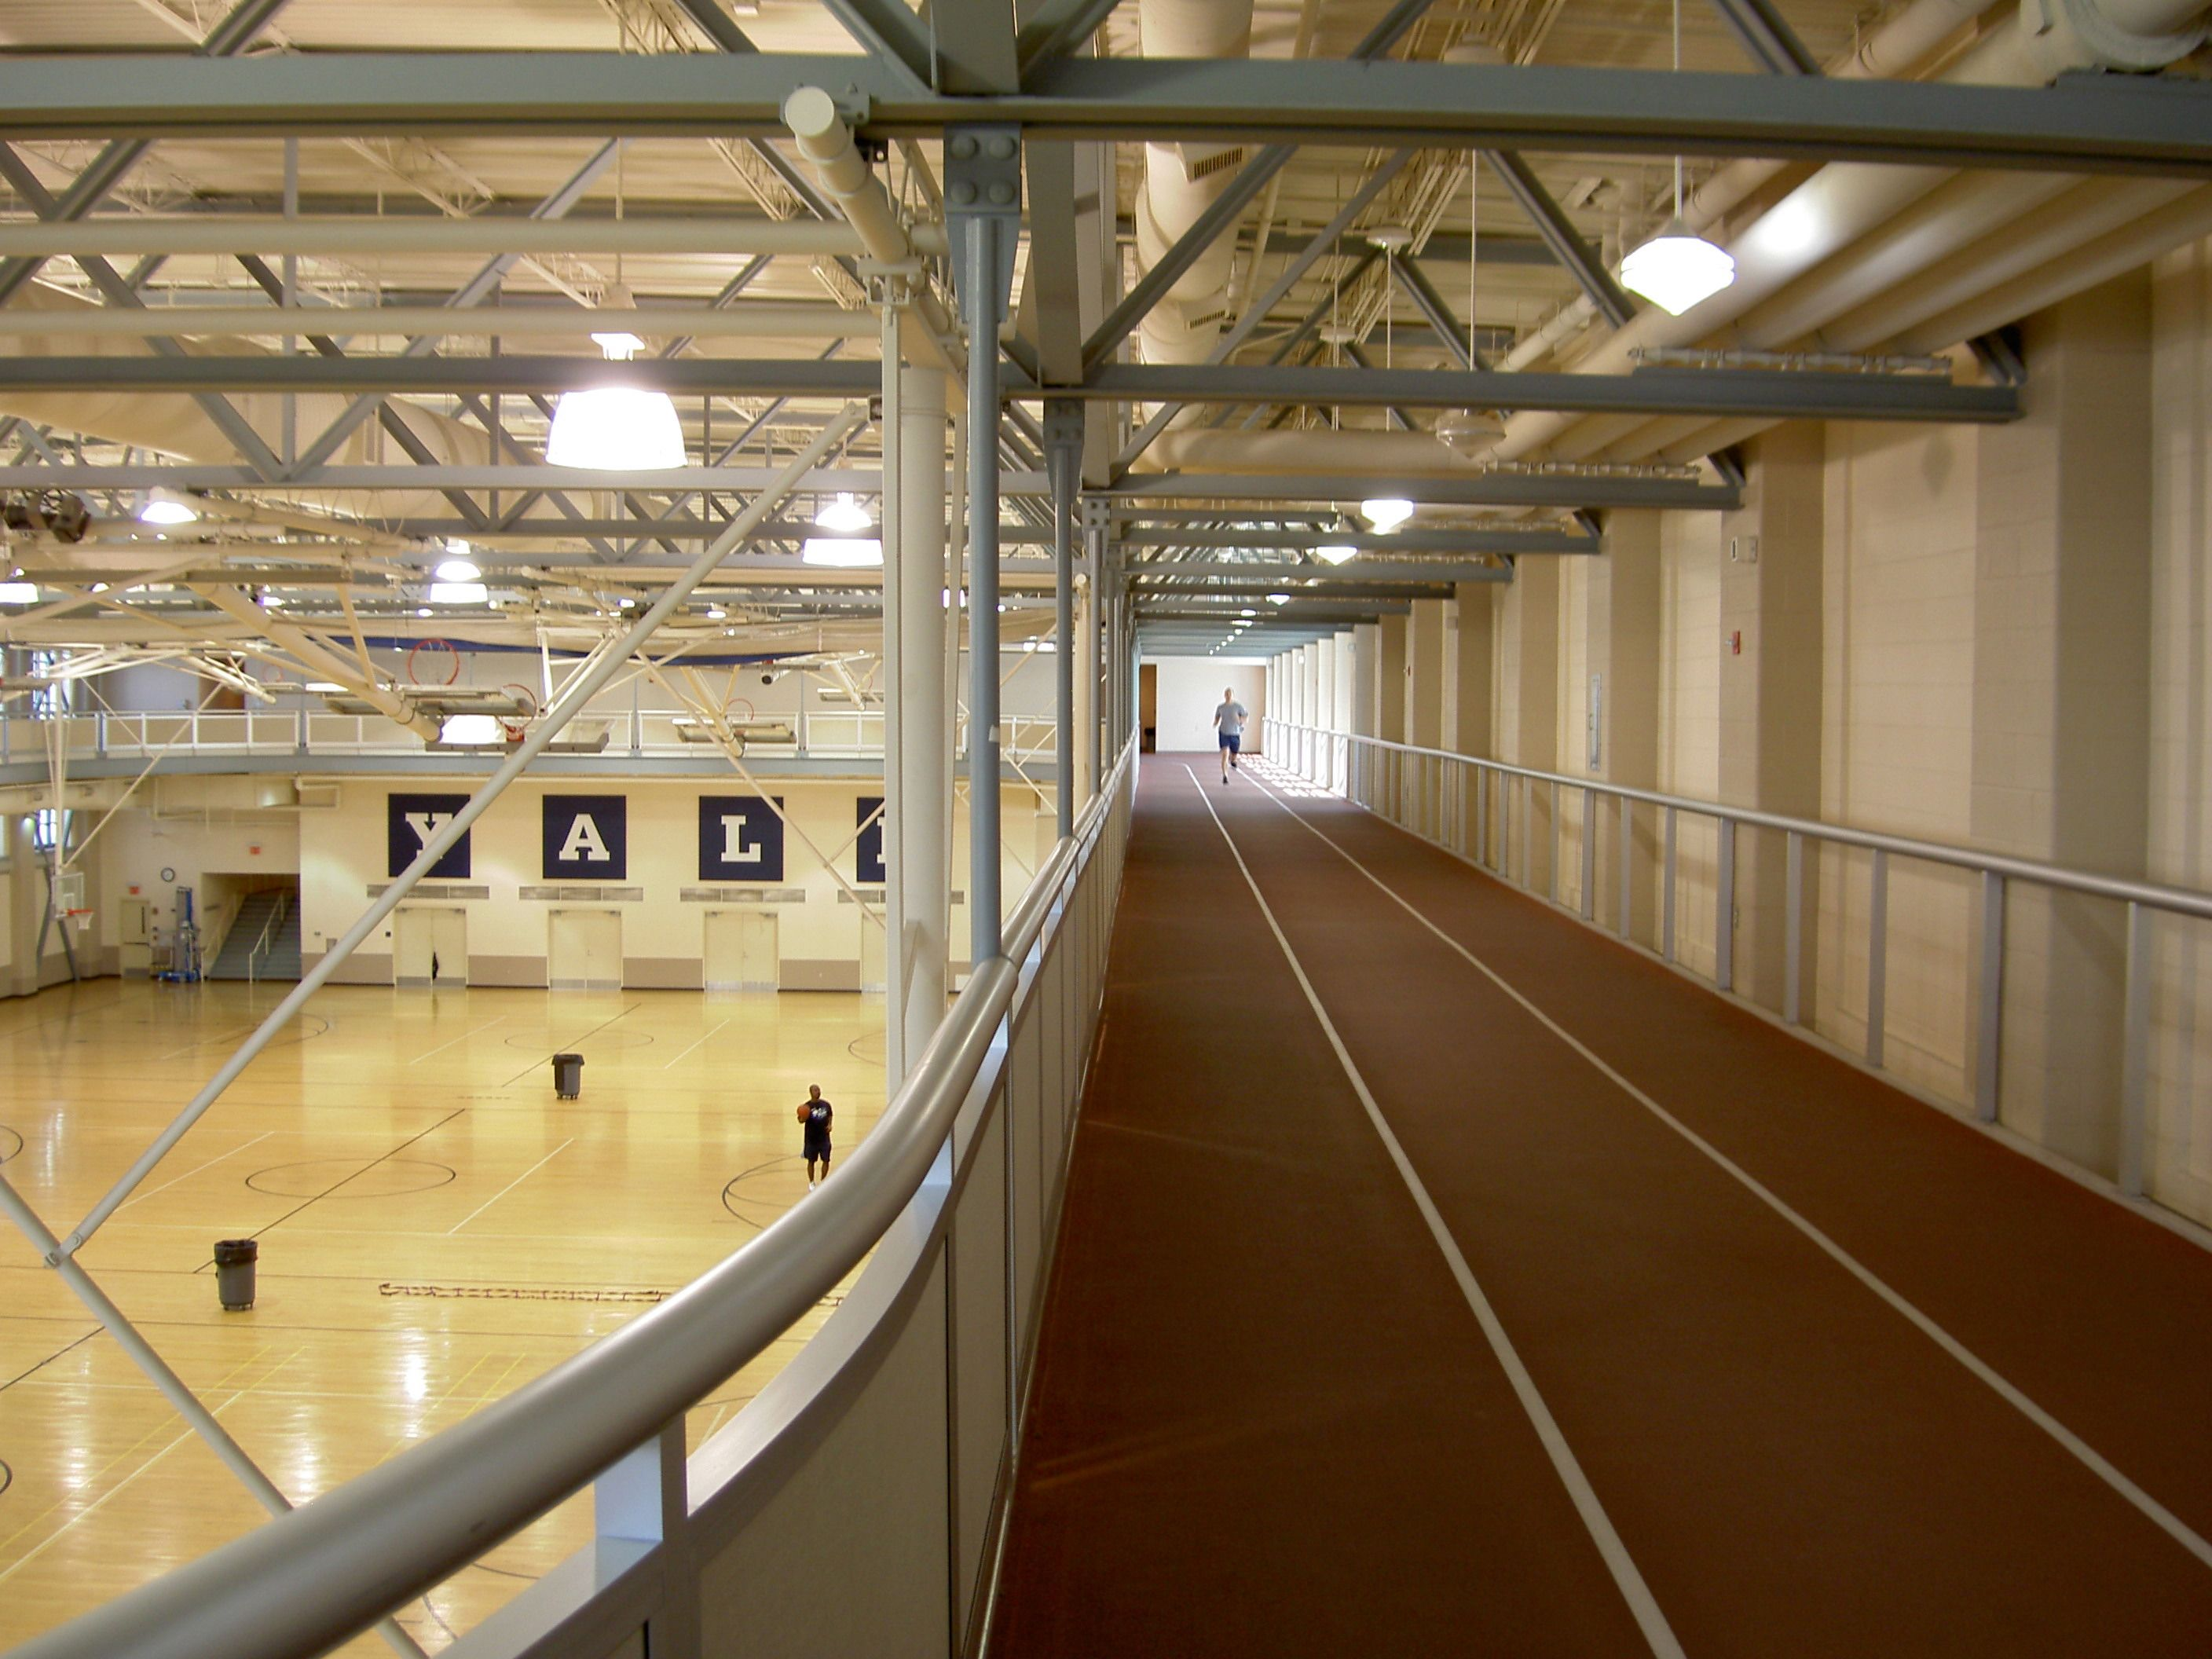 College Gyms Exterior Roof Architecture Metal Roof Wooden Terrace